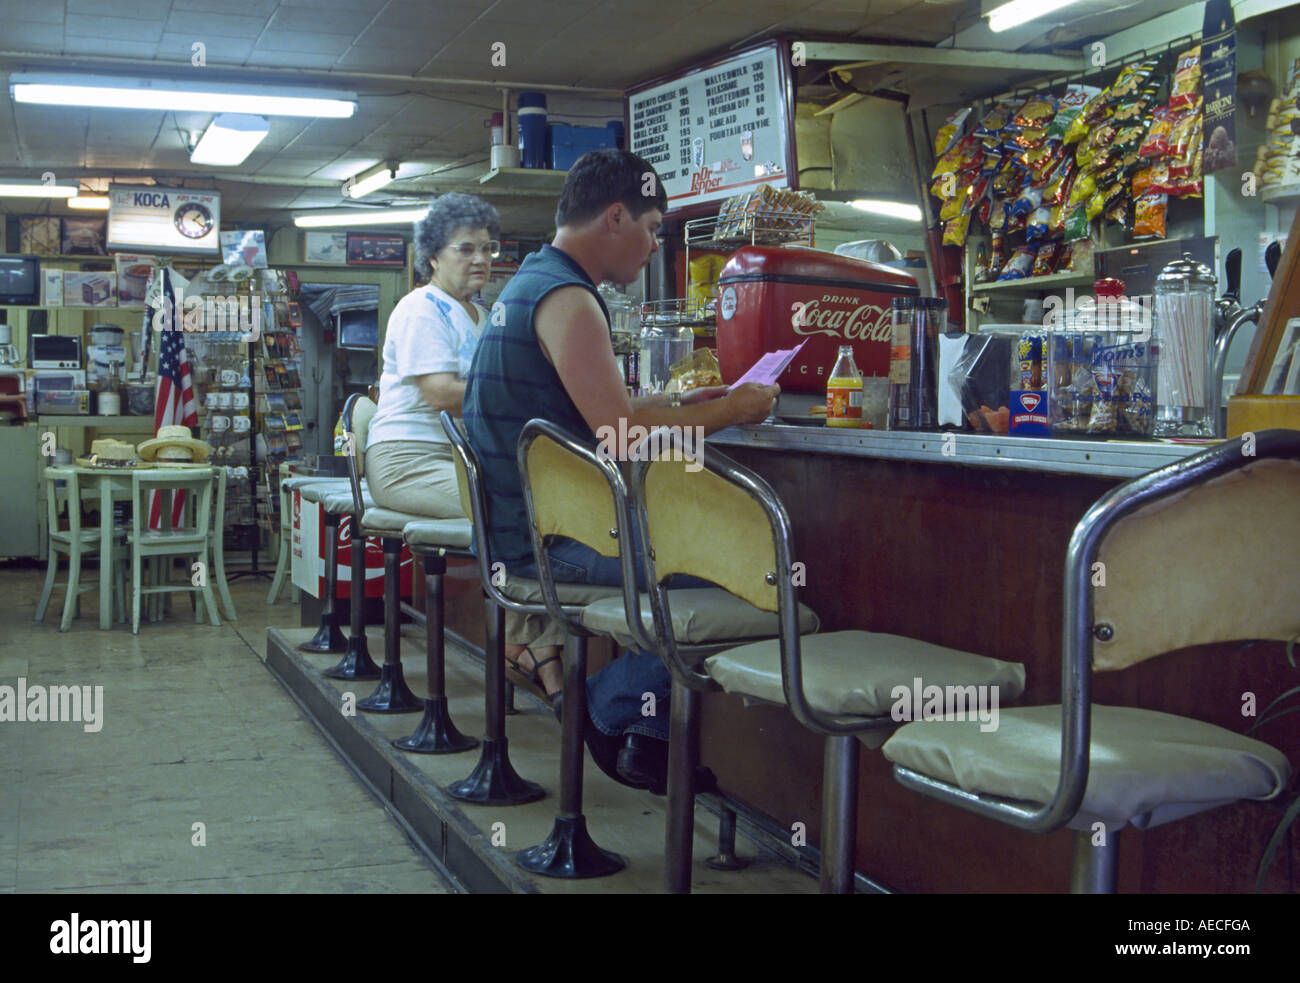 Customers at Hi School Gifts Drugs, historical drugstore in town of New London, Texas, USA - Stock Image